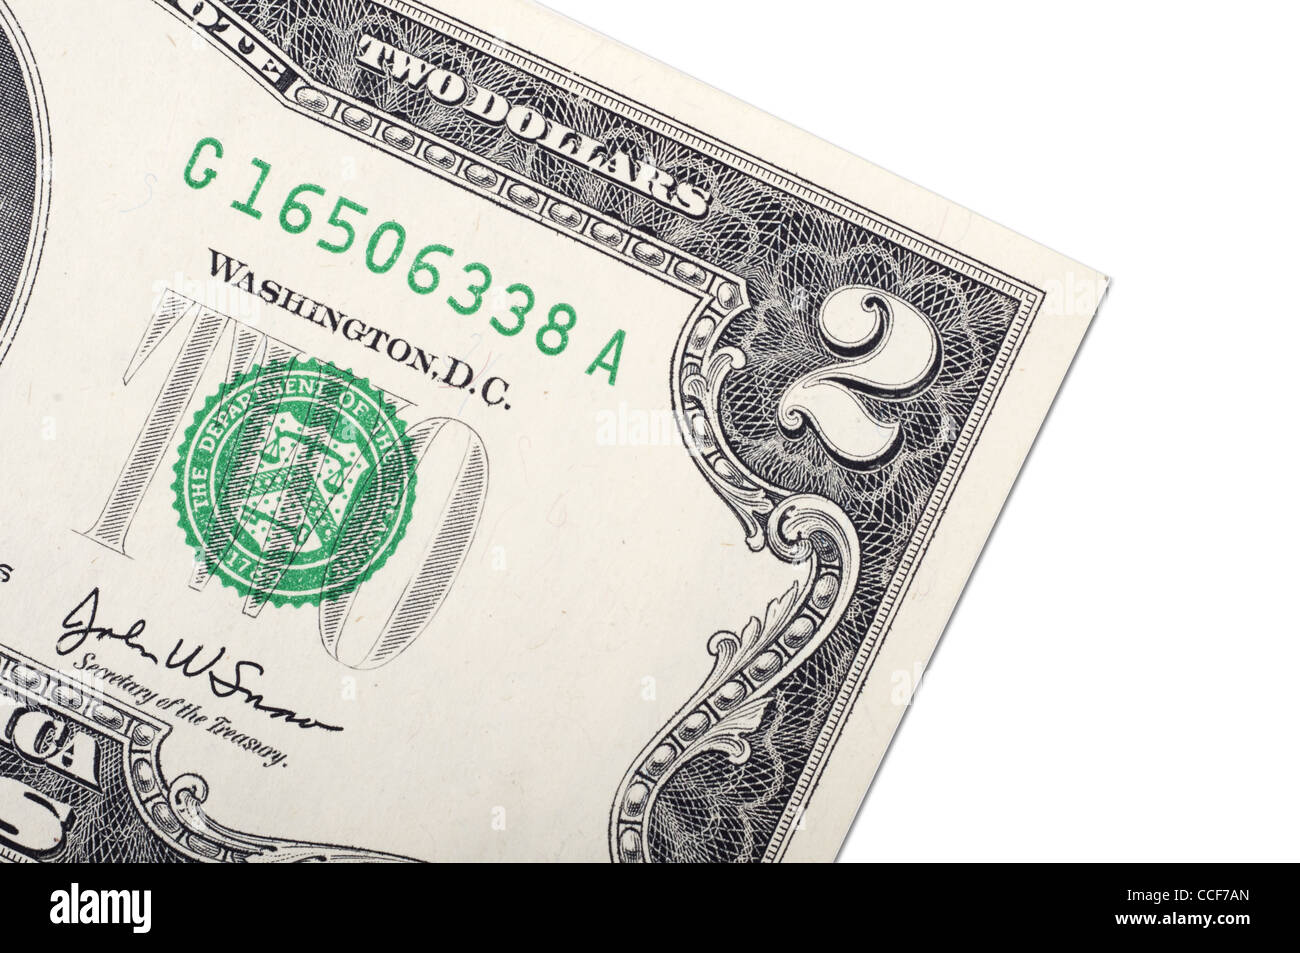 Two dollar bill close-up on white - Stock Image